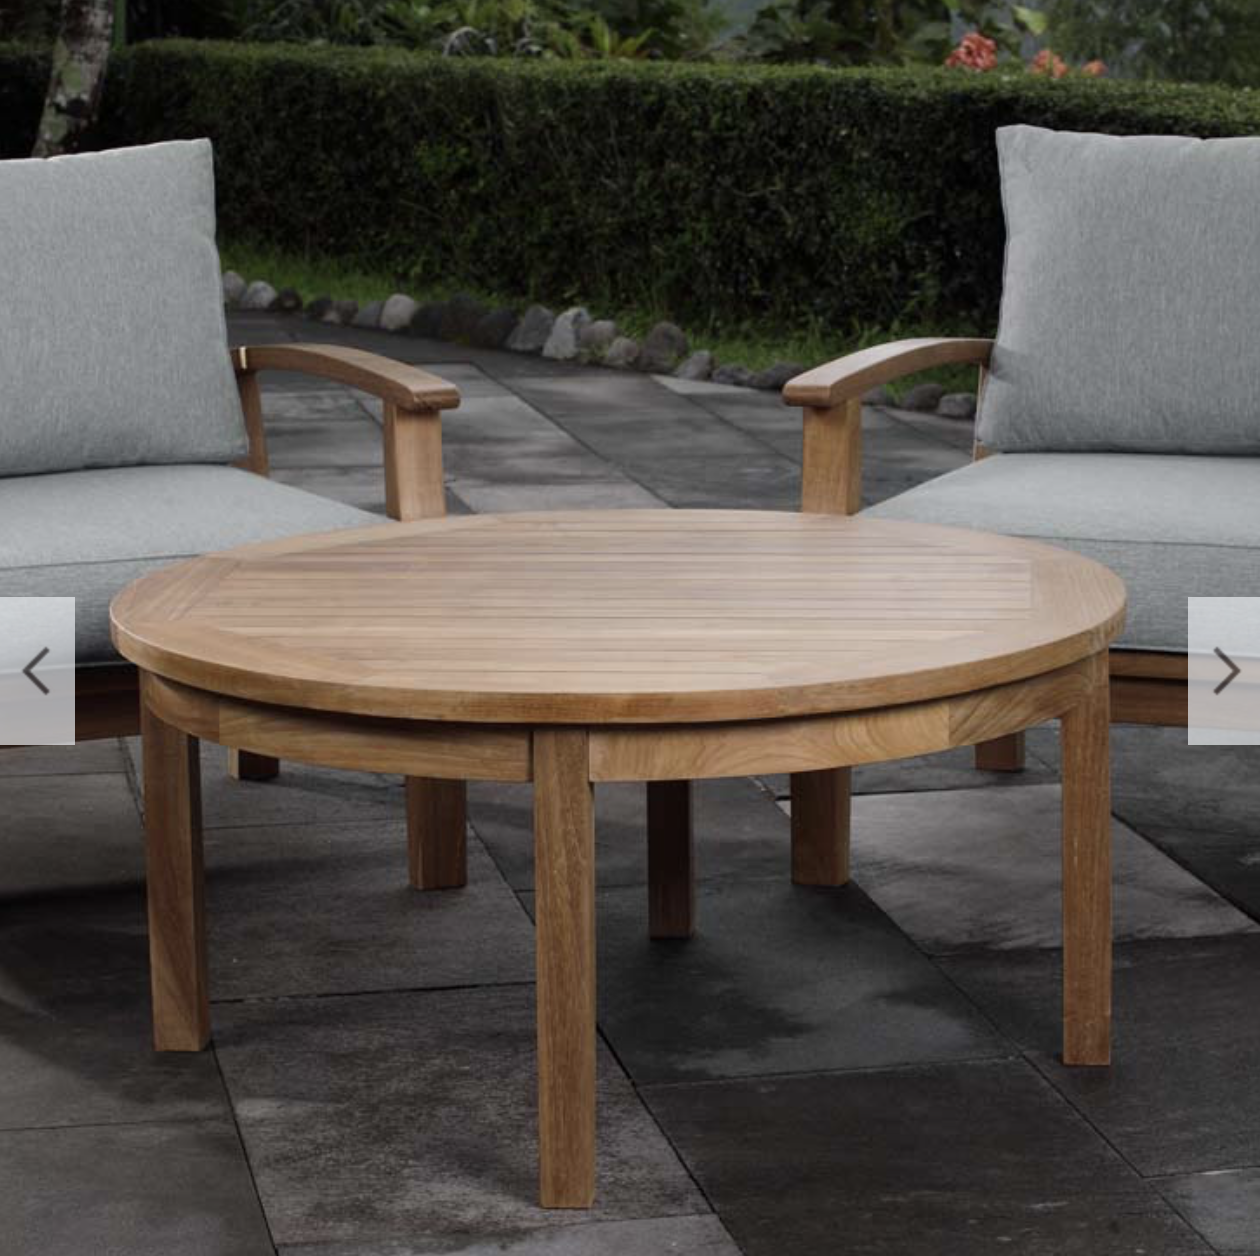 Outdoor Patio Teak Round Coffee Table